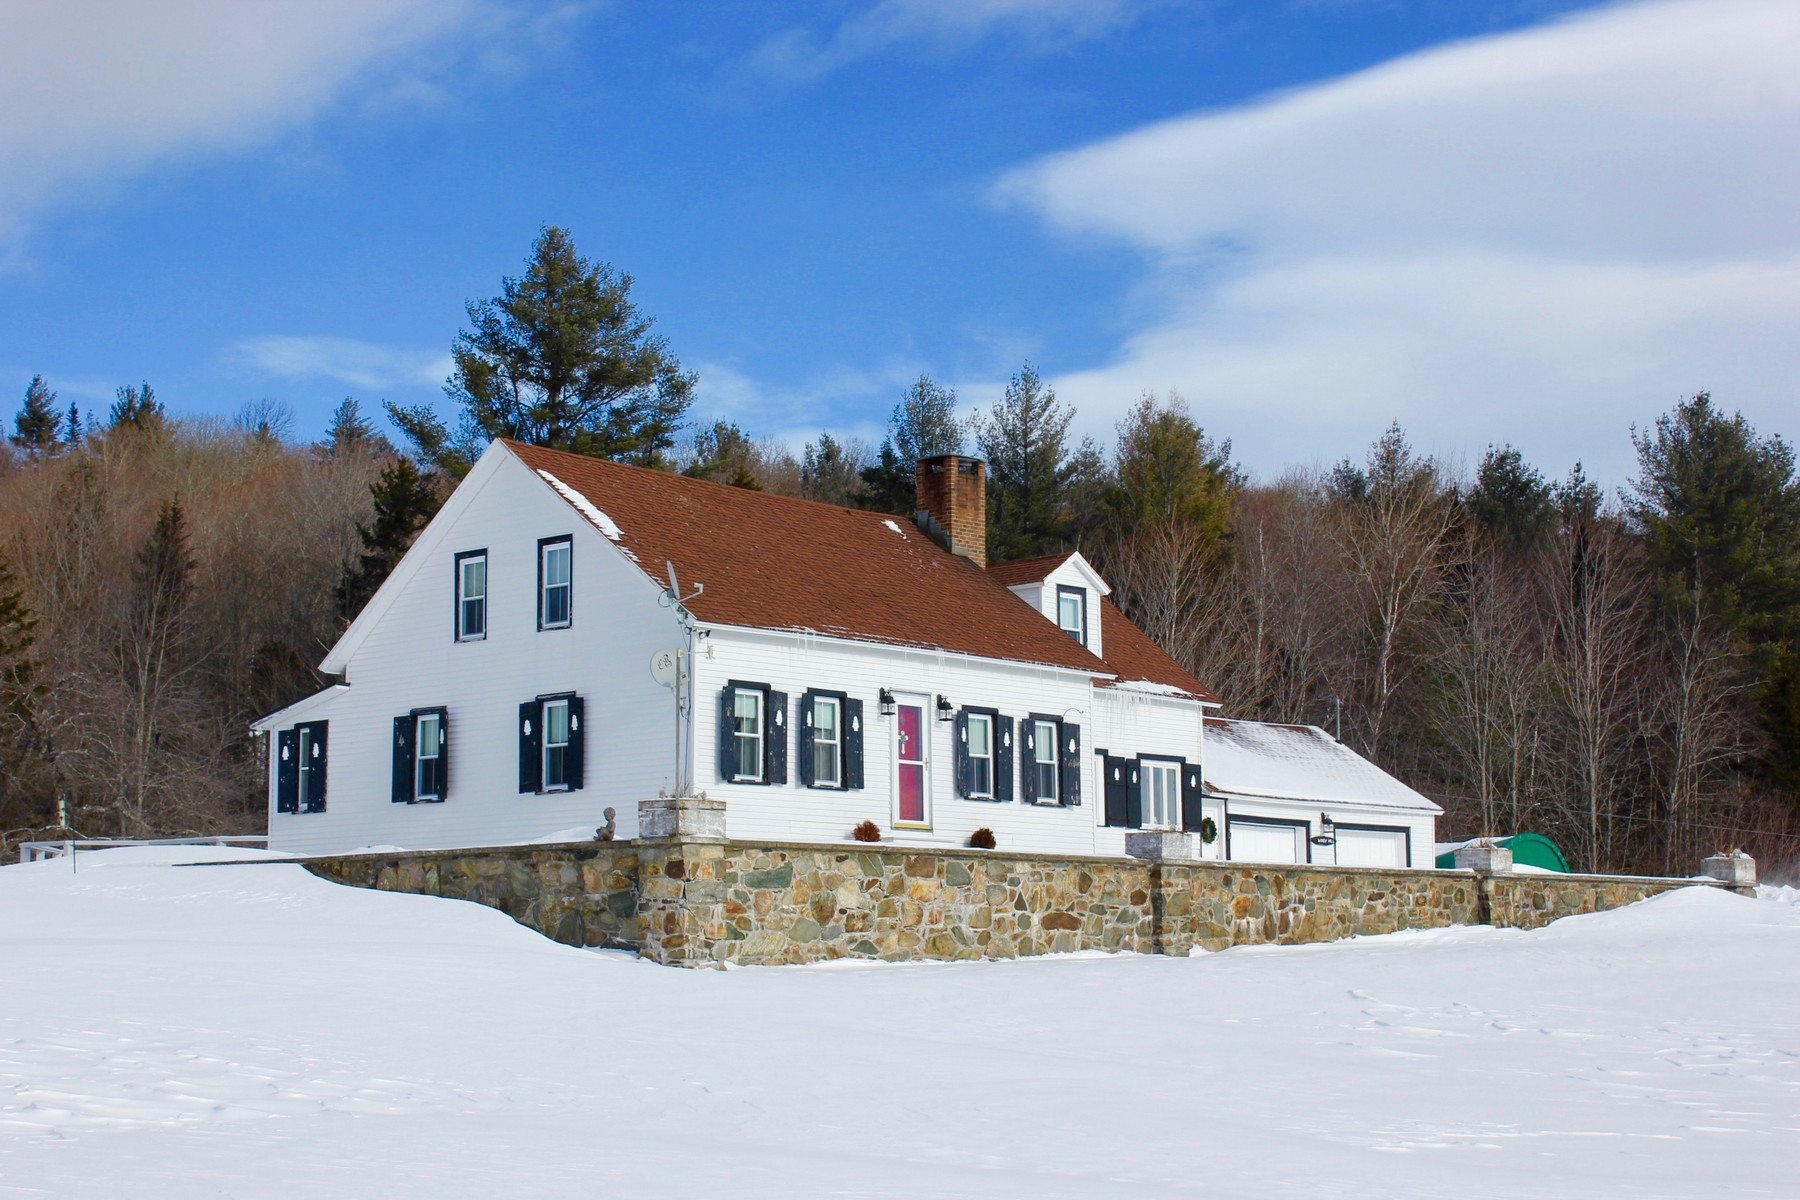 Single Family Home for Sale at Welcome to Windy Lane 166 Windy Hill Ln Mount Holly, Vermont, 05758 United States